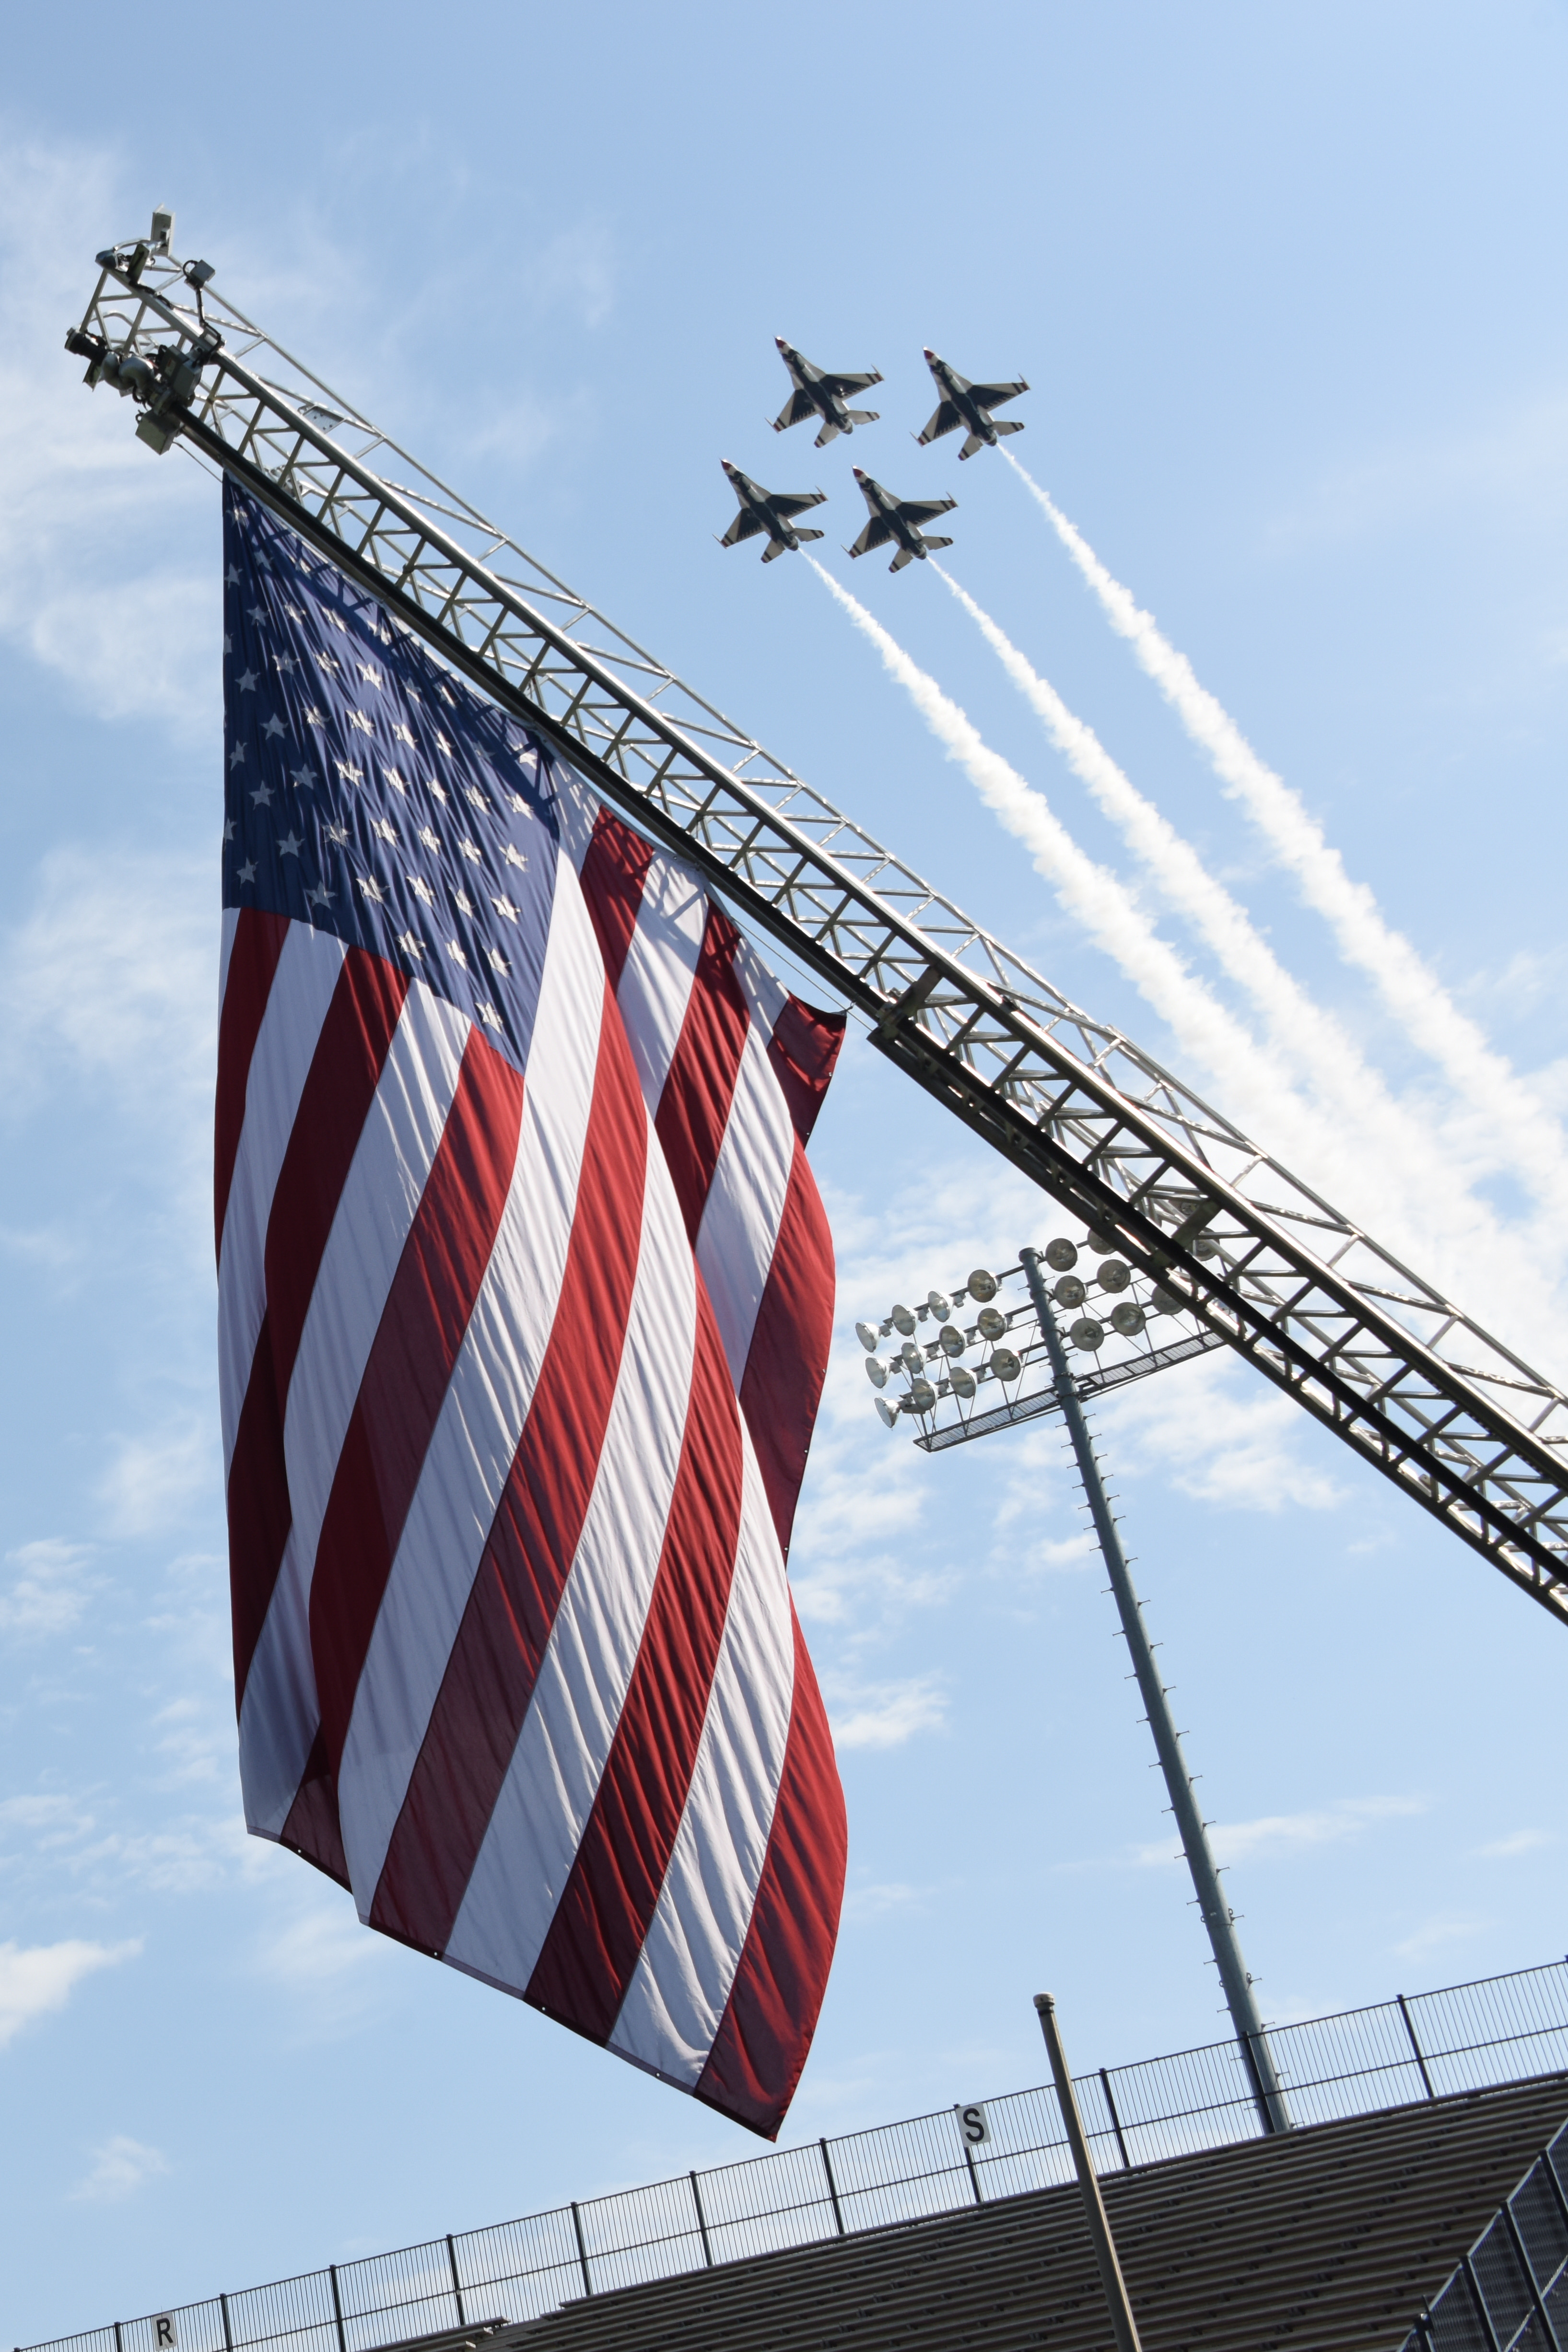 The U.S. Air Force Thunderbirds perform a fly-over of the Cramton Bowl stadium during the Officer Training School parade and graduation of